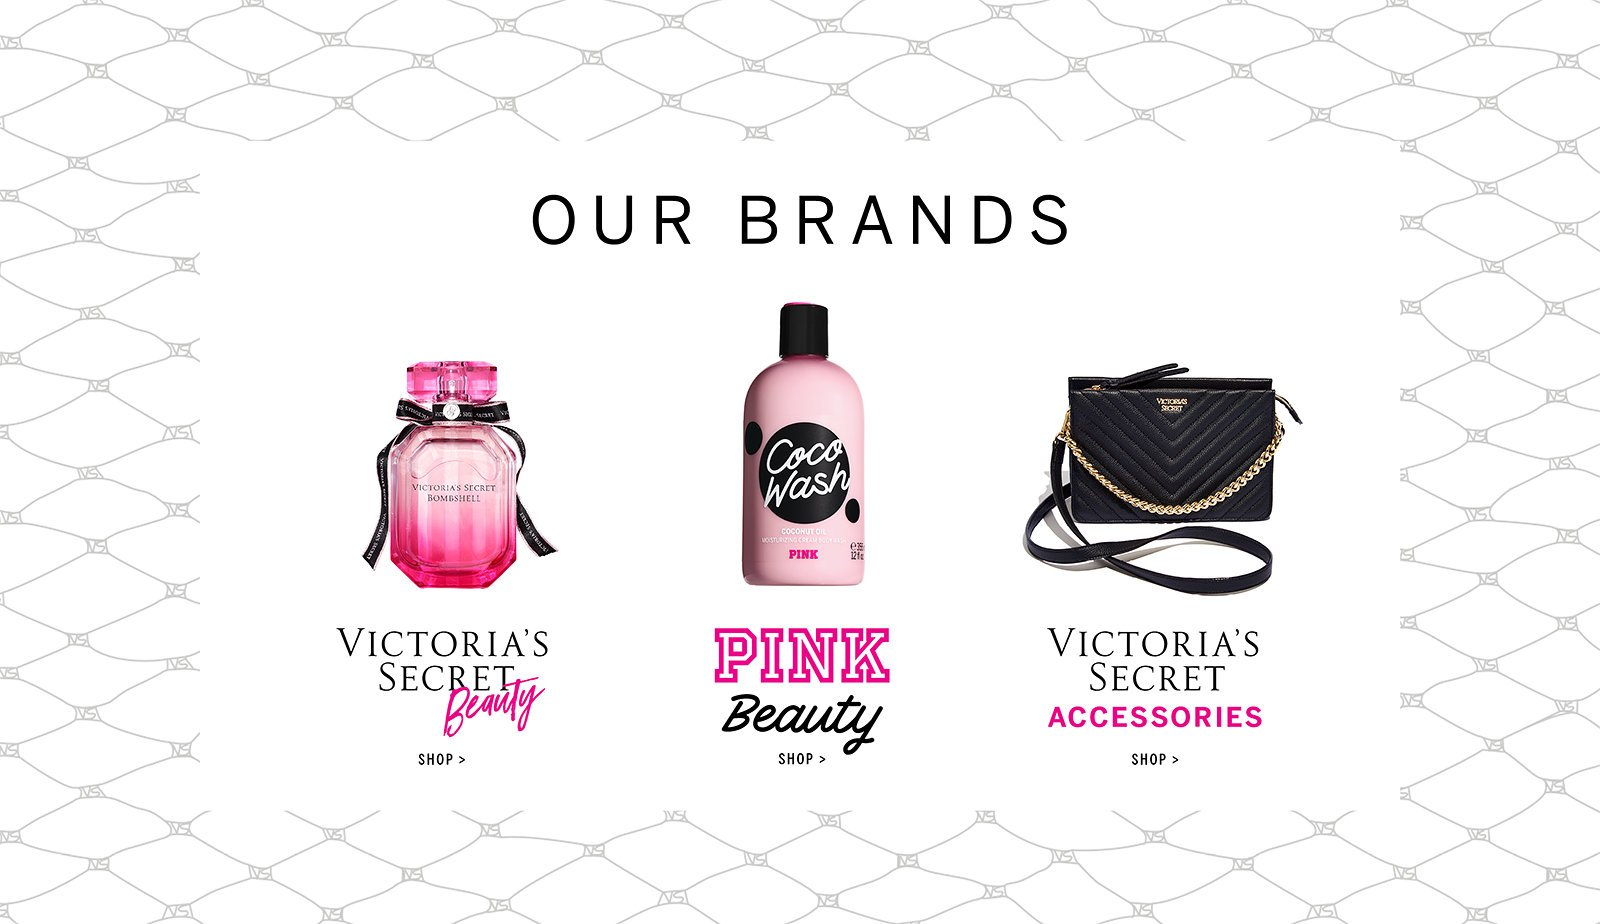 Beauty Products & Accessories by PINK & Victoria's Secret